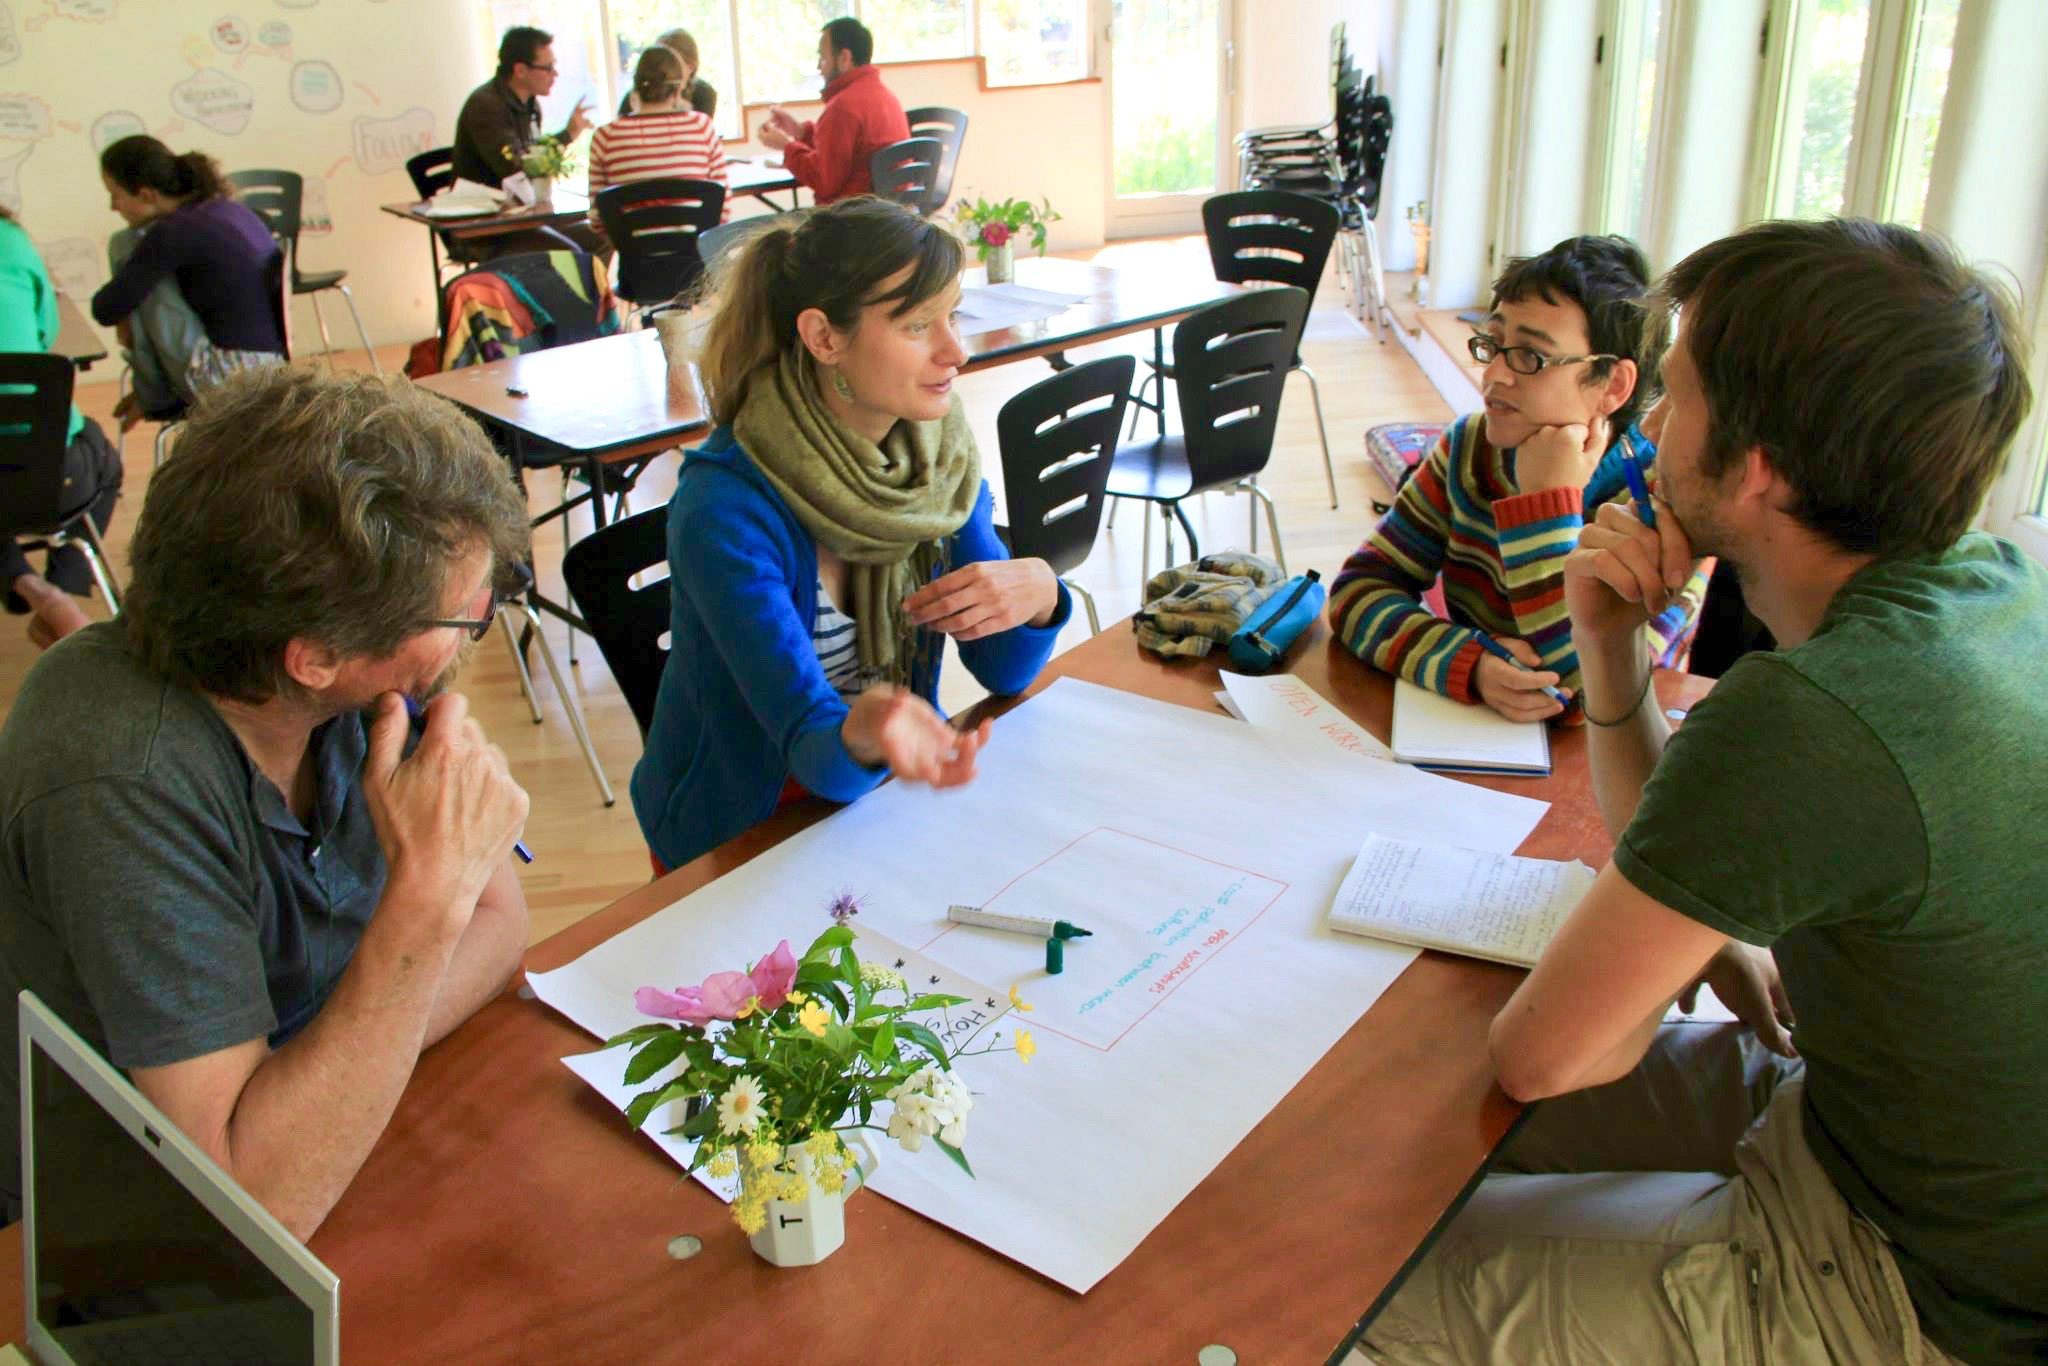 World Cafe session on Permaculture Education Accessibility at the European Permaculture Teachers' Partnership, Friland, Denmark